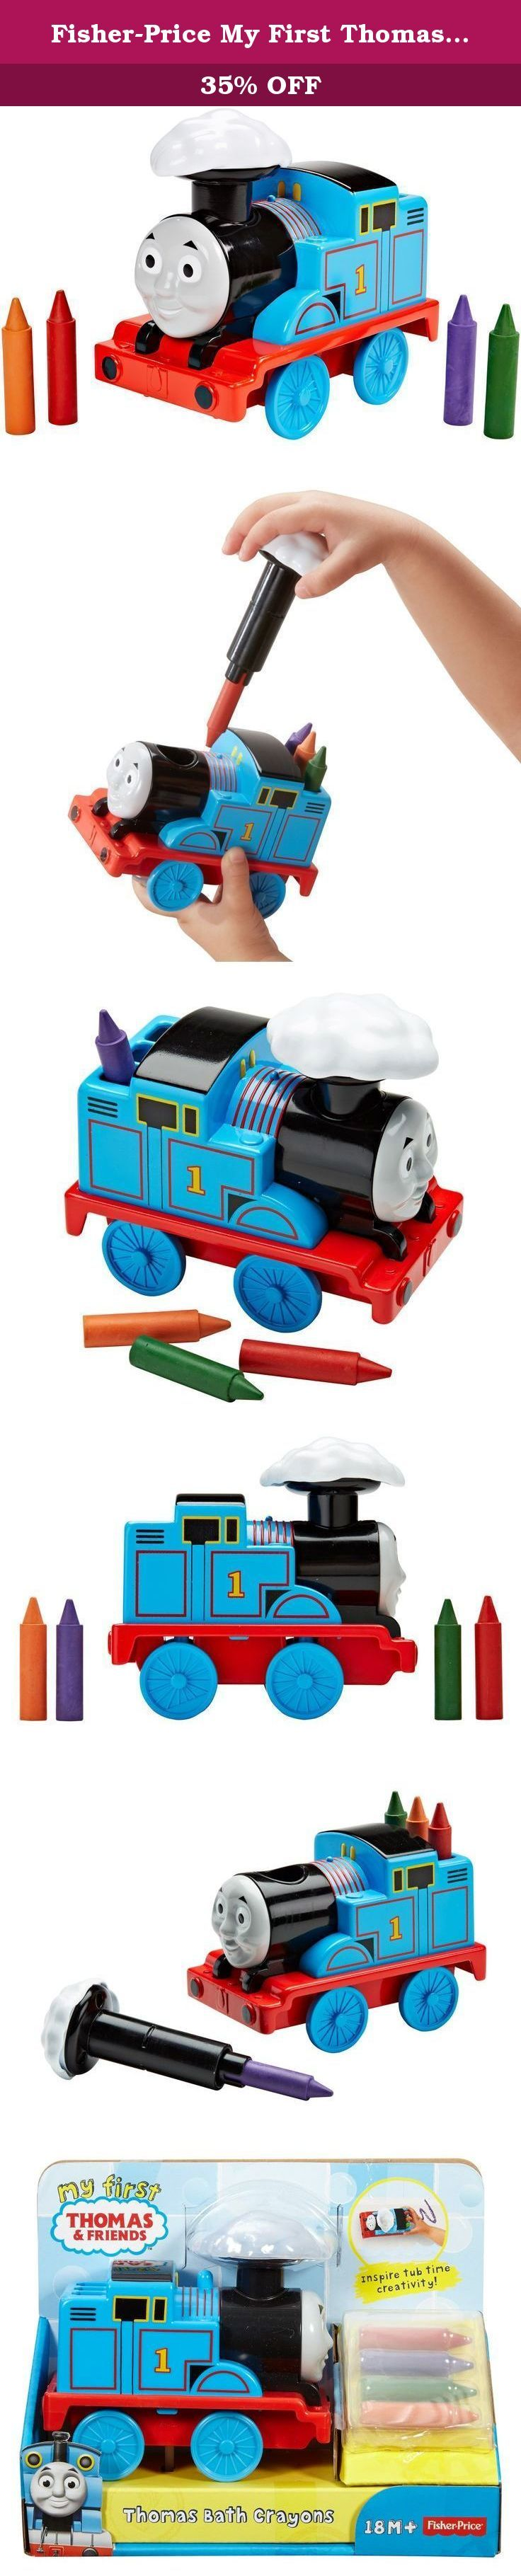 Fisher-Price My First Thomas the Train Thomas Bath Crayons. Encourage your little artist with Thomas Bath Crayons from Fisher-Price! Bath time becomes the perfect opportunity for creativity and self-expression as children use the crayons to draw on the tub. Place one of the crayons in Thomas' steam cloud, slide it into his funnel, then use the No. 1 blue engine to craft tub time masterpieces. A world of fun, beneficial play unfolds at their fingertips as children use fine motor skills...